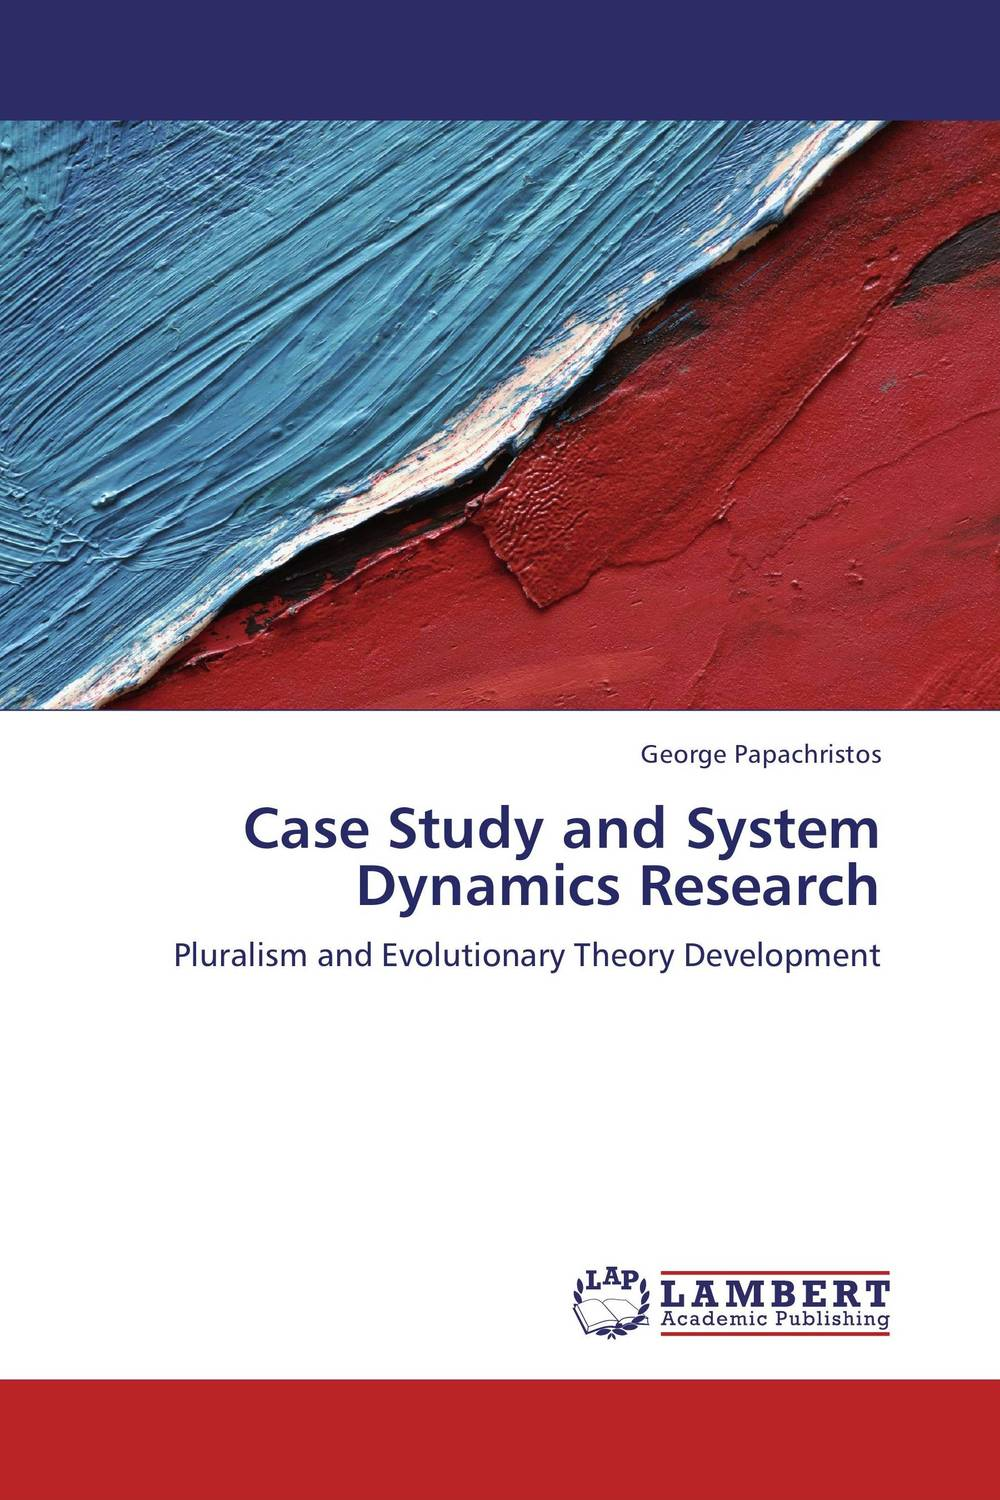 Case Study and System Dynamics Research